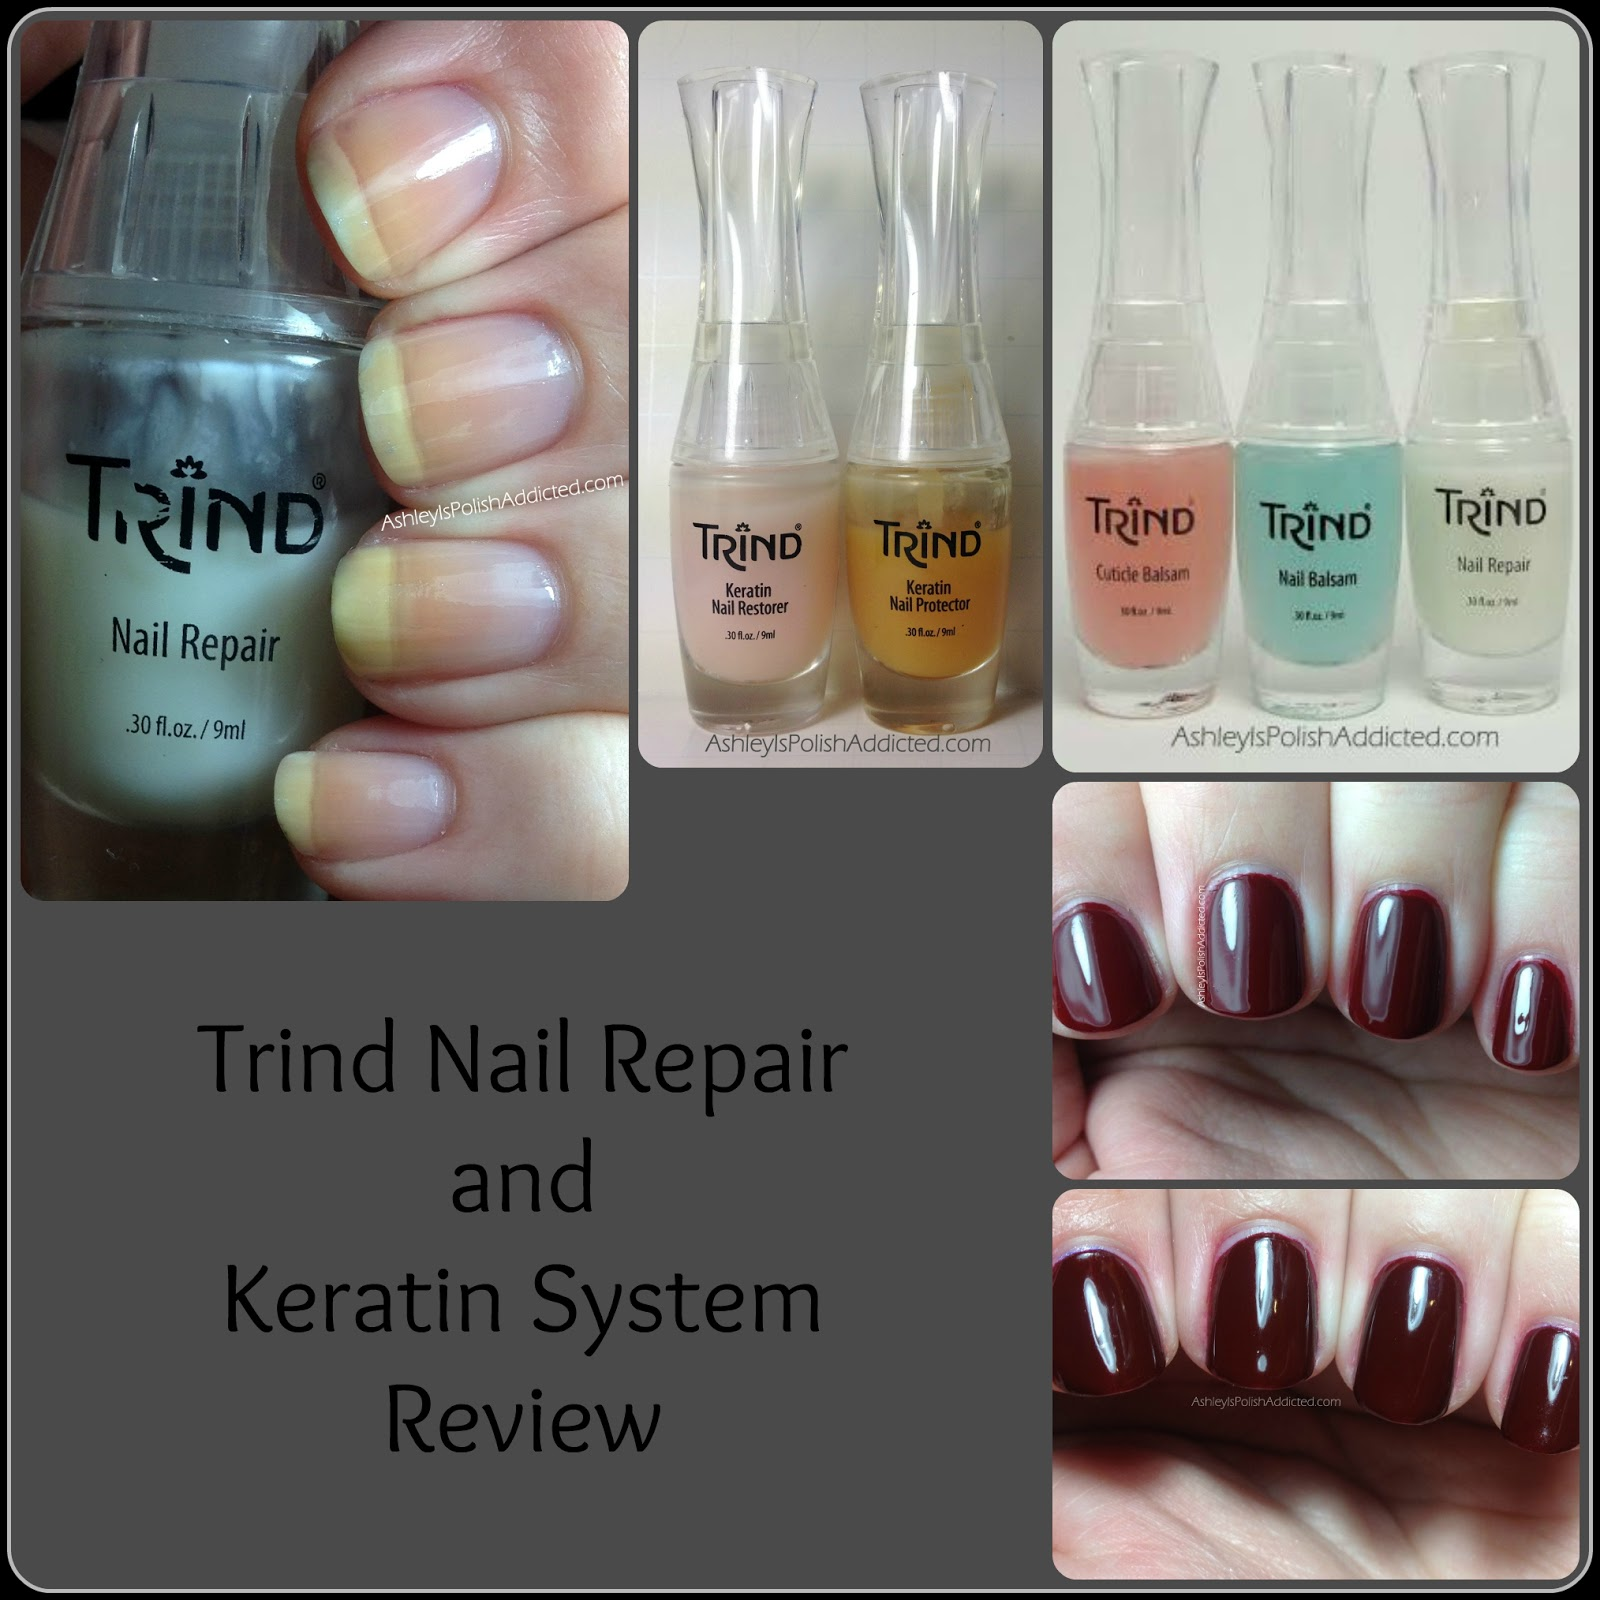 Trind Nail Care Keratin Treatment Kit Repair Cuticle Balsam And Complete Review